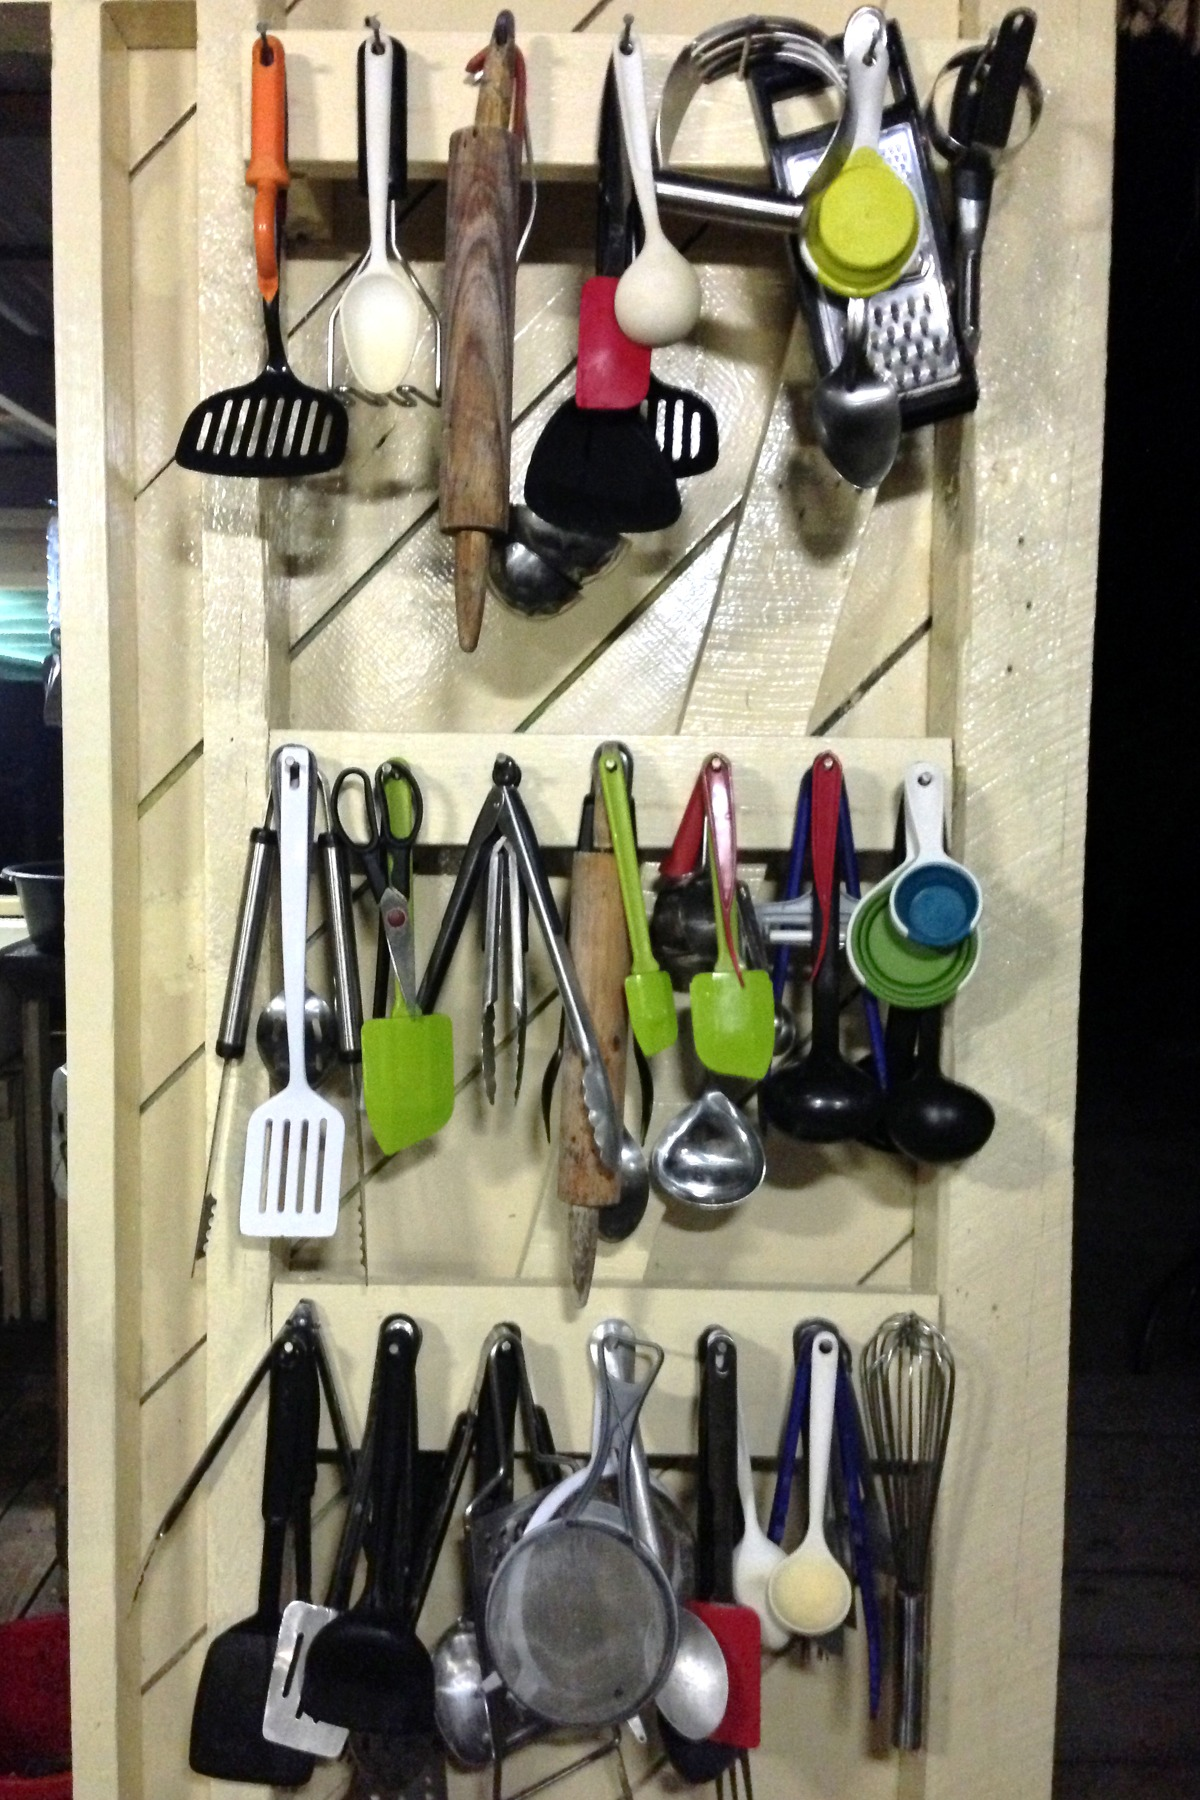 Multi-purpose: Belize kitchen utensils and musical instruments